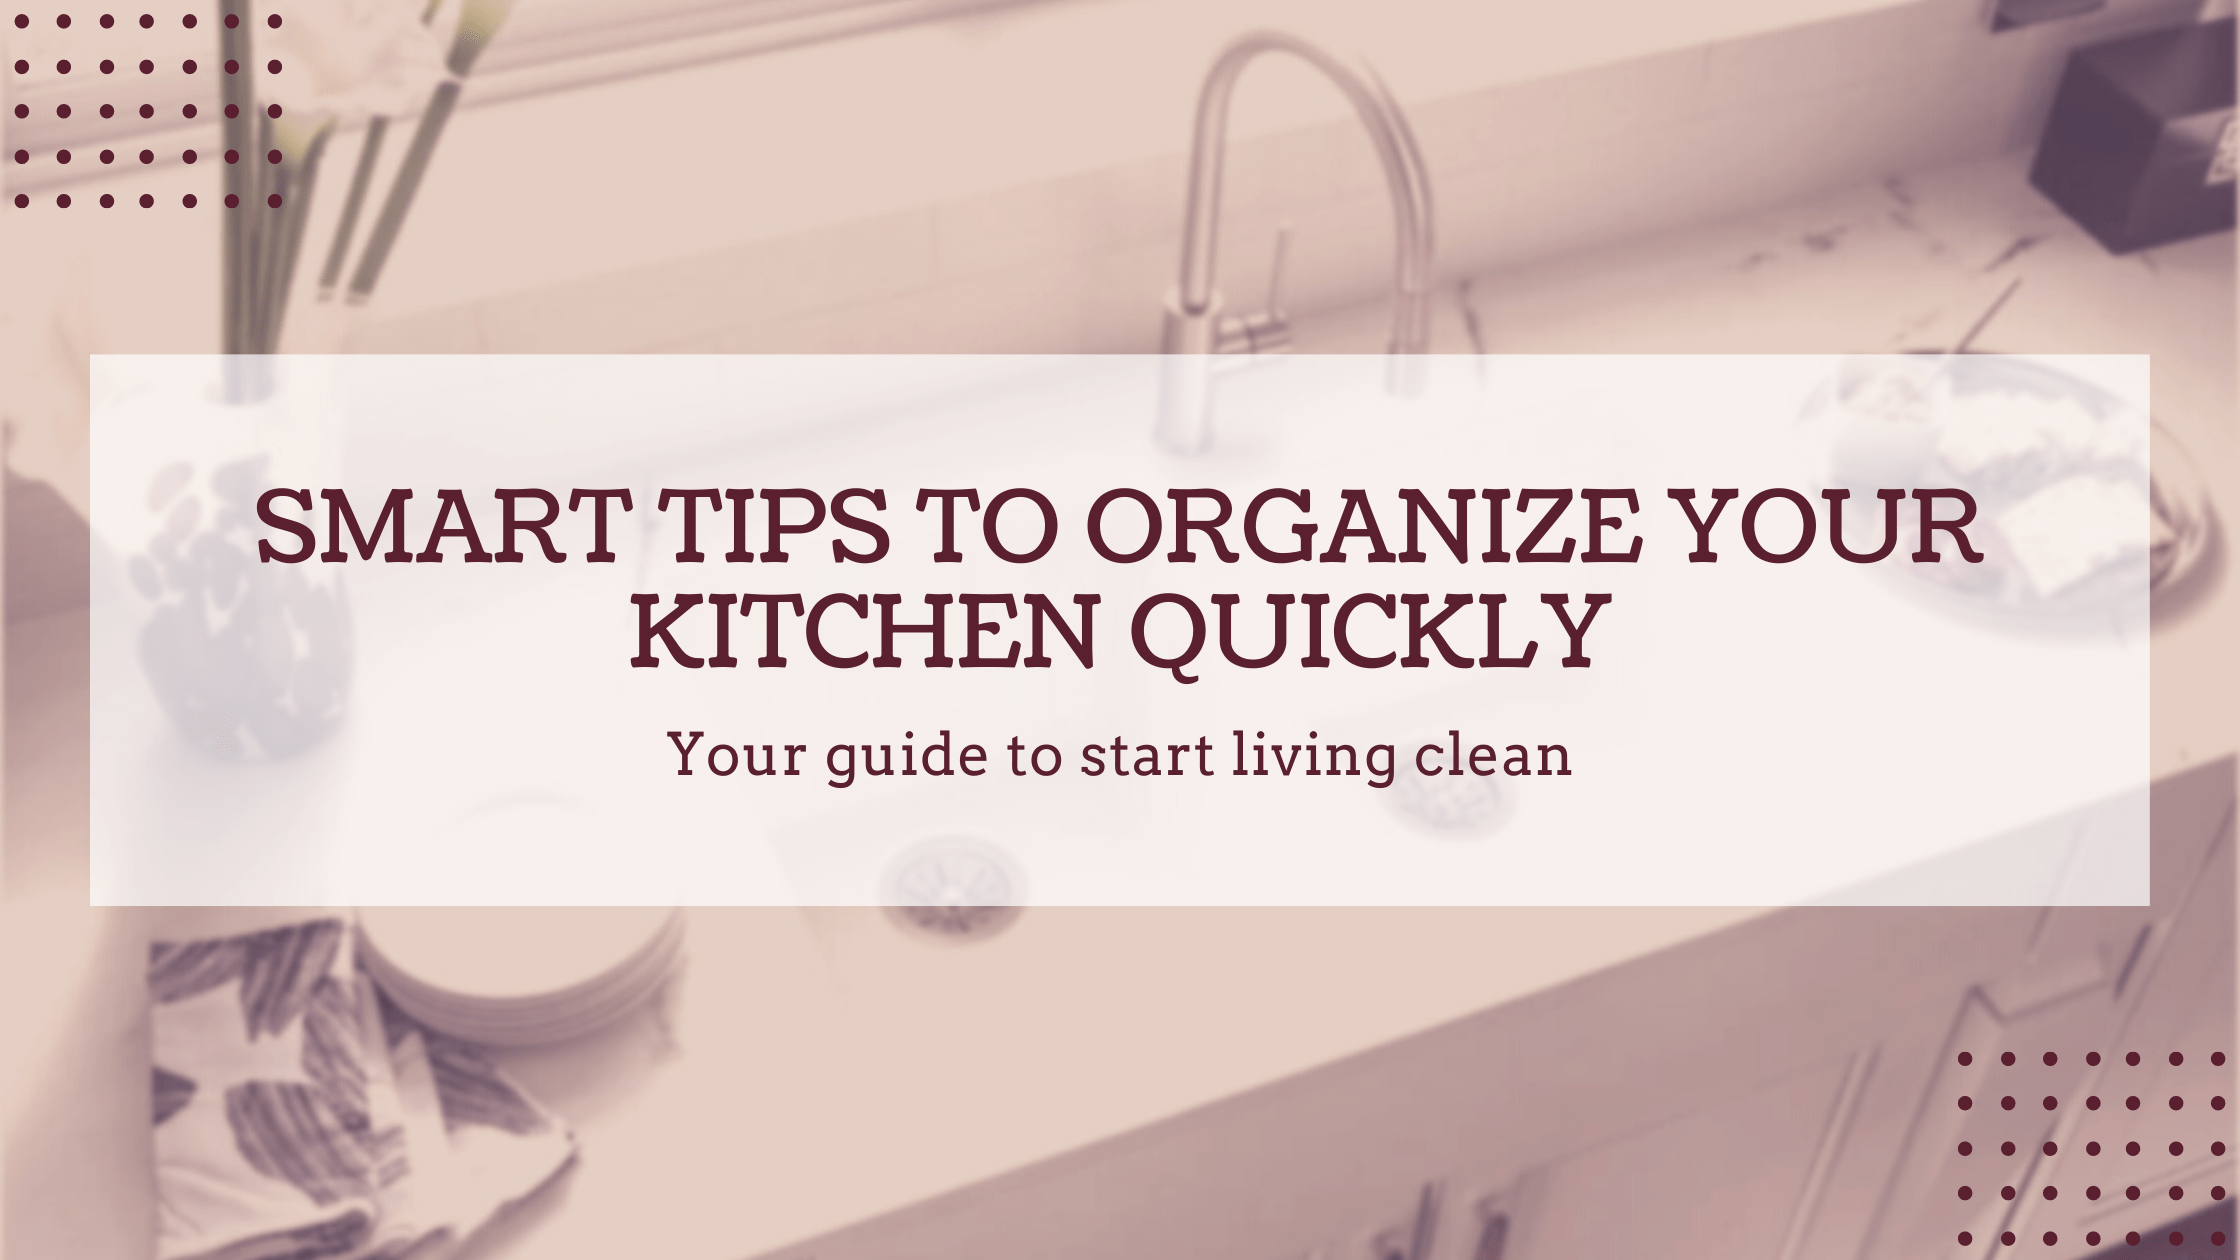 Important Features for Organize Your Kitchen Quickly